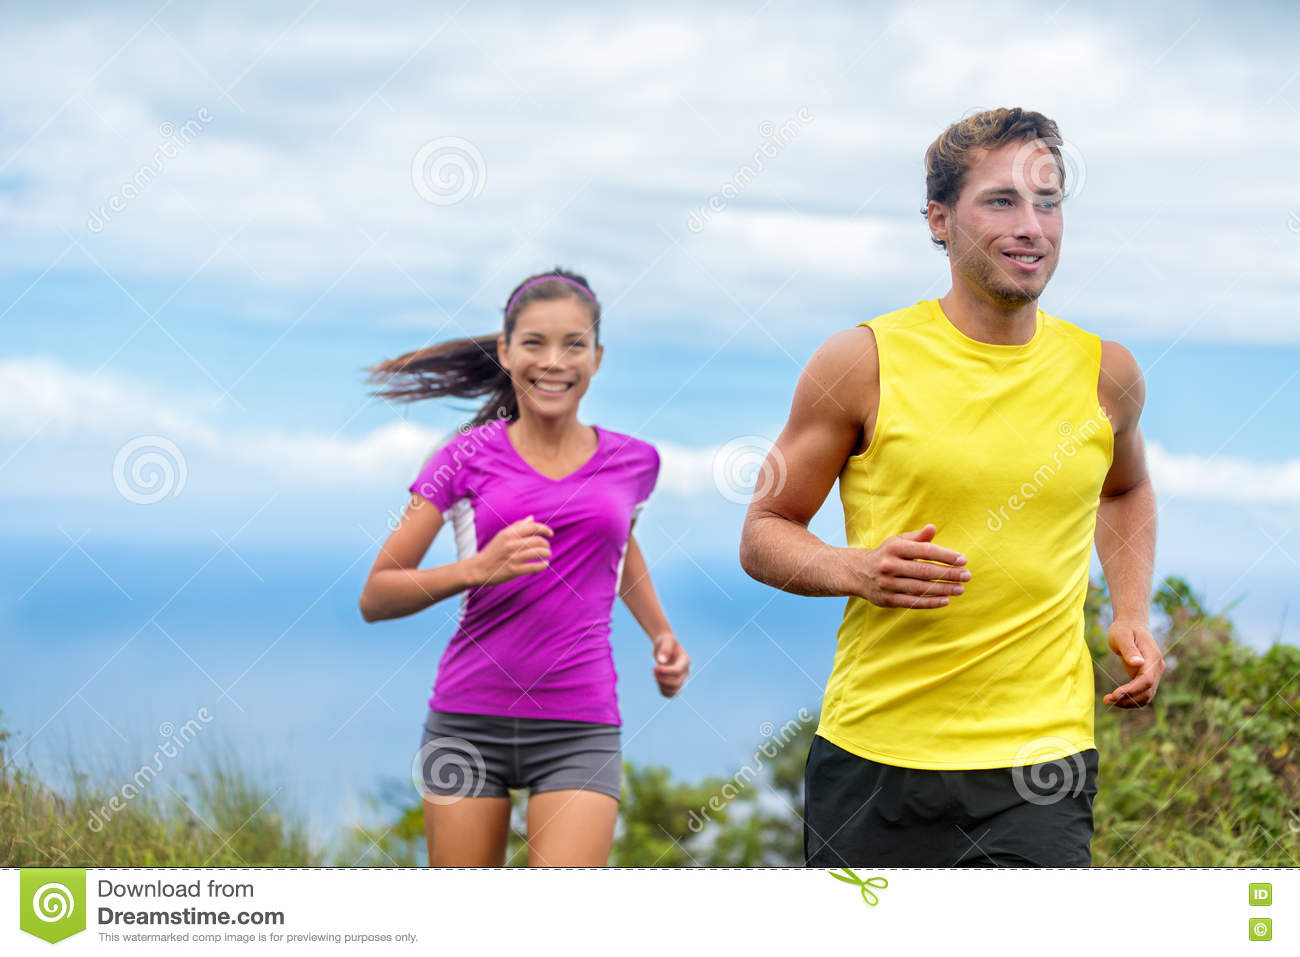 happy-sports-people-running-living-active-life-healthy-trail-lifestyle-couple-athletes-training-cardio-together-summer-72044586.jpg